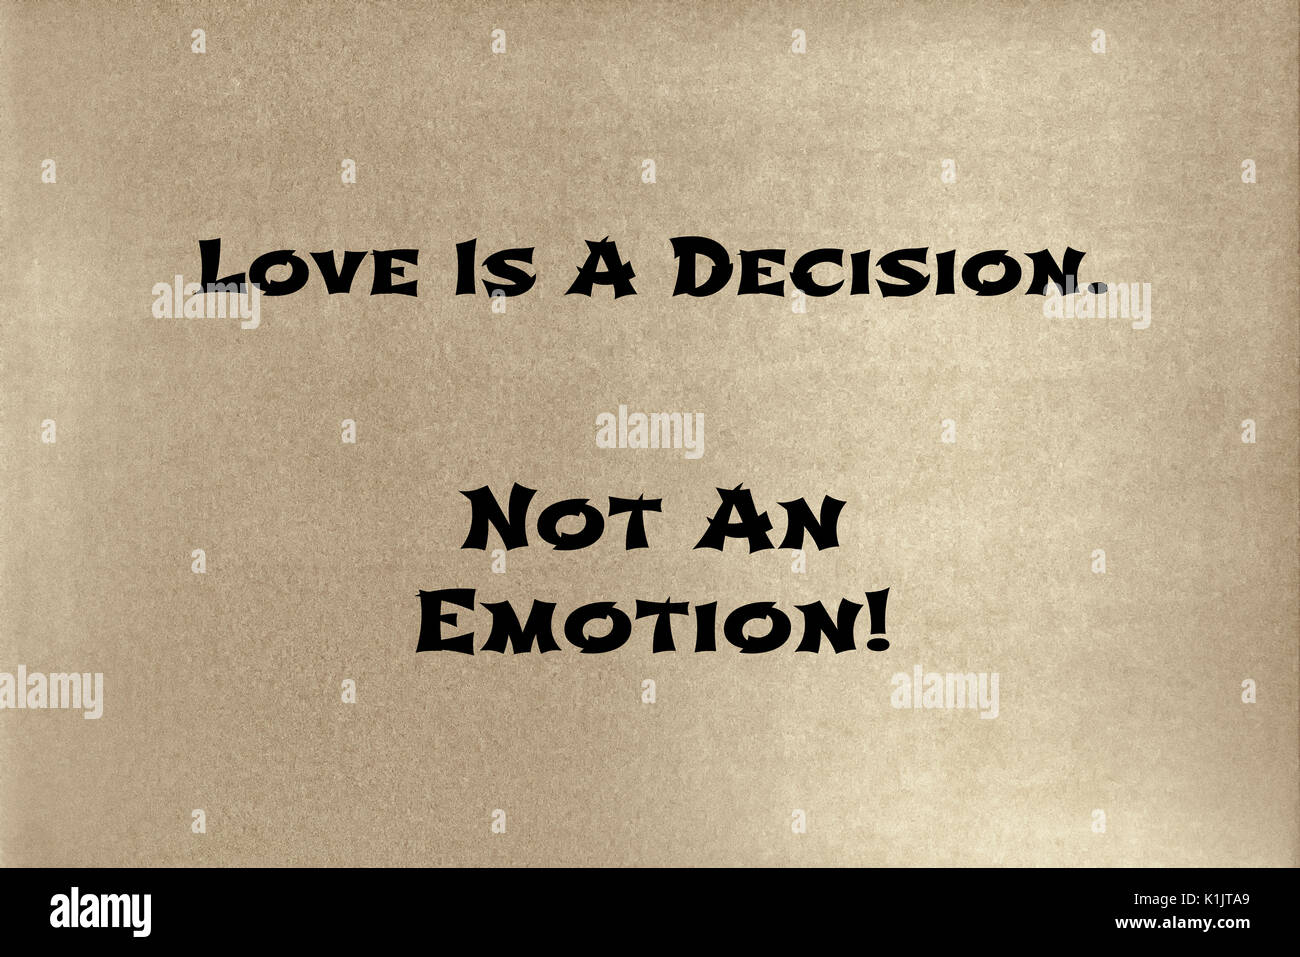 A Phrase By Lao Tzu Love Is A Decision Not An Emotion